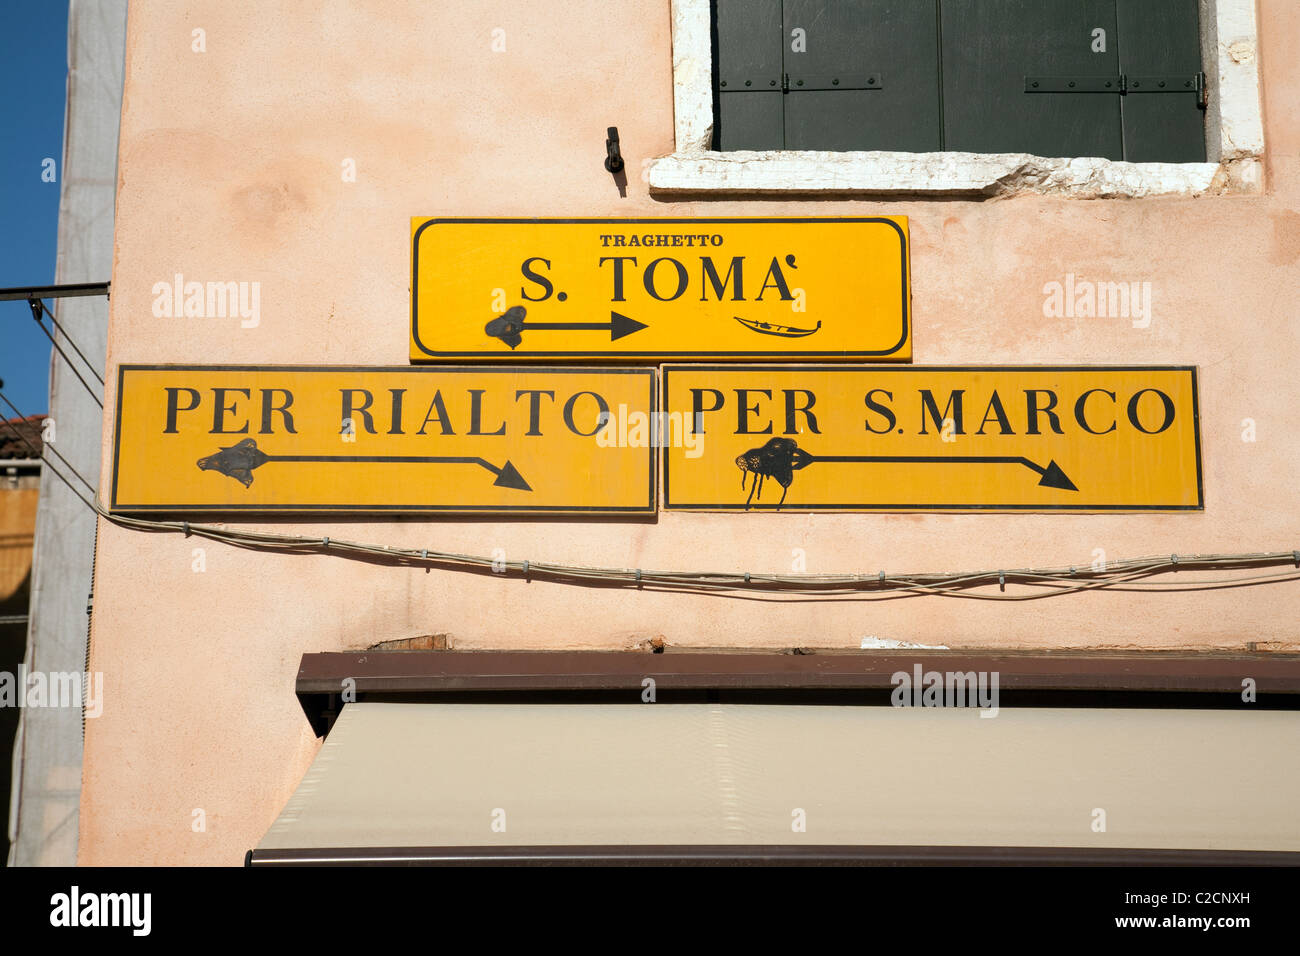 Venice Street Signs Stock Photos & Venice Street Signs Stock Images ...